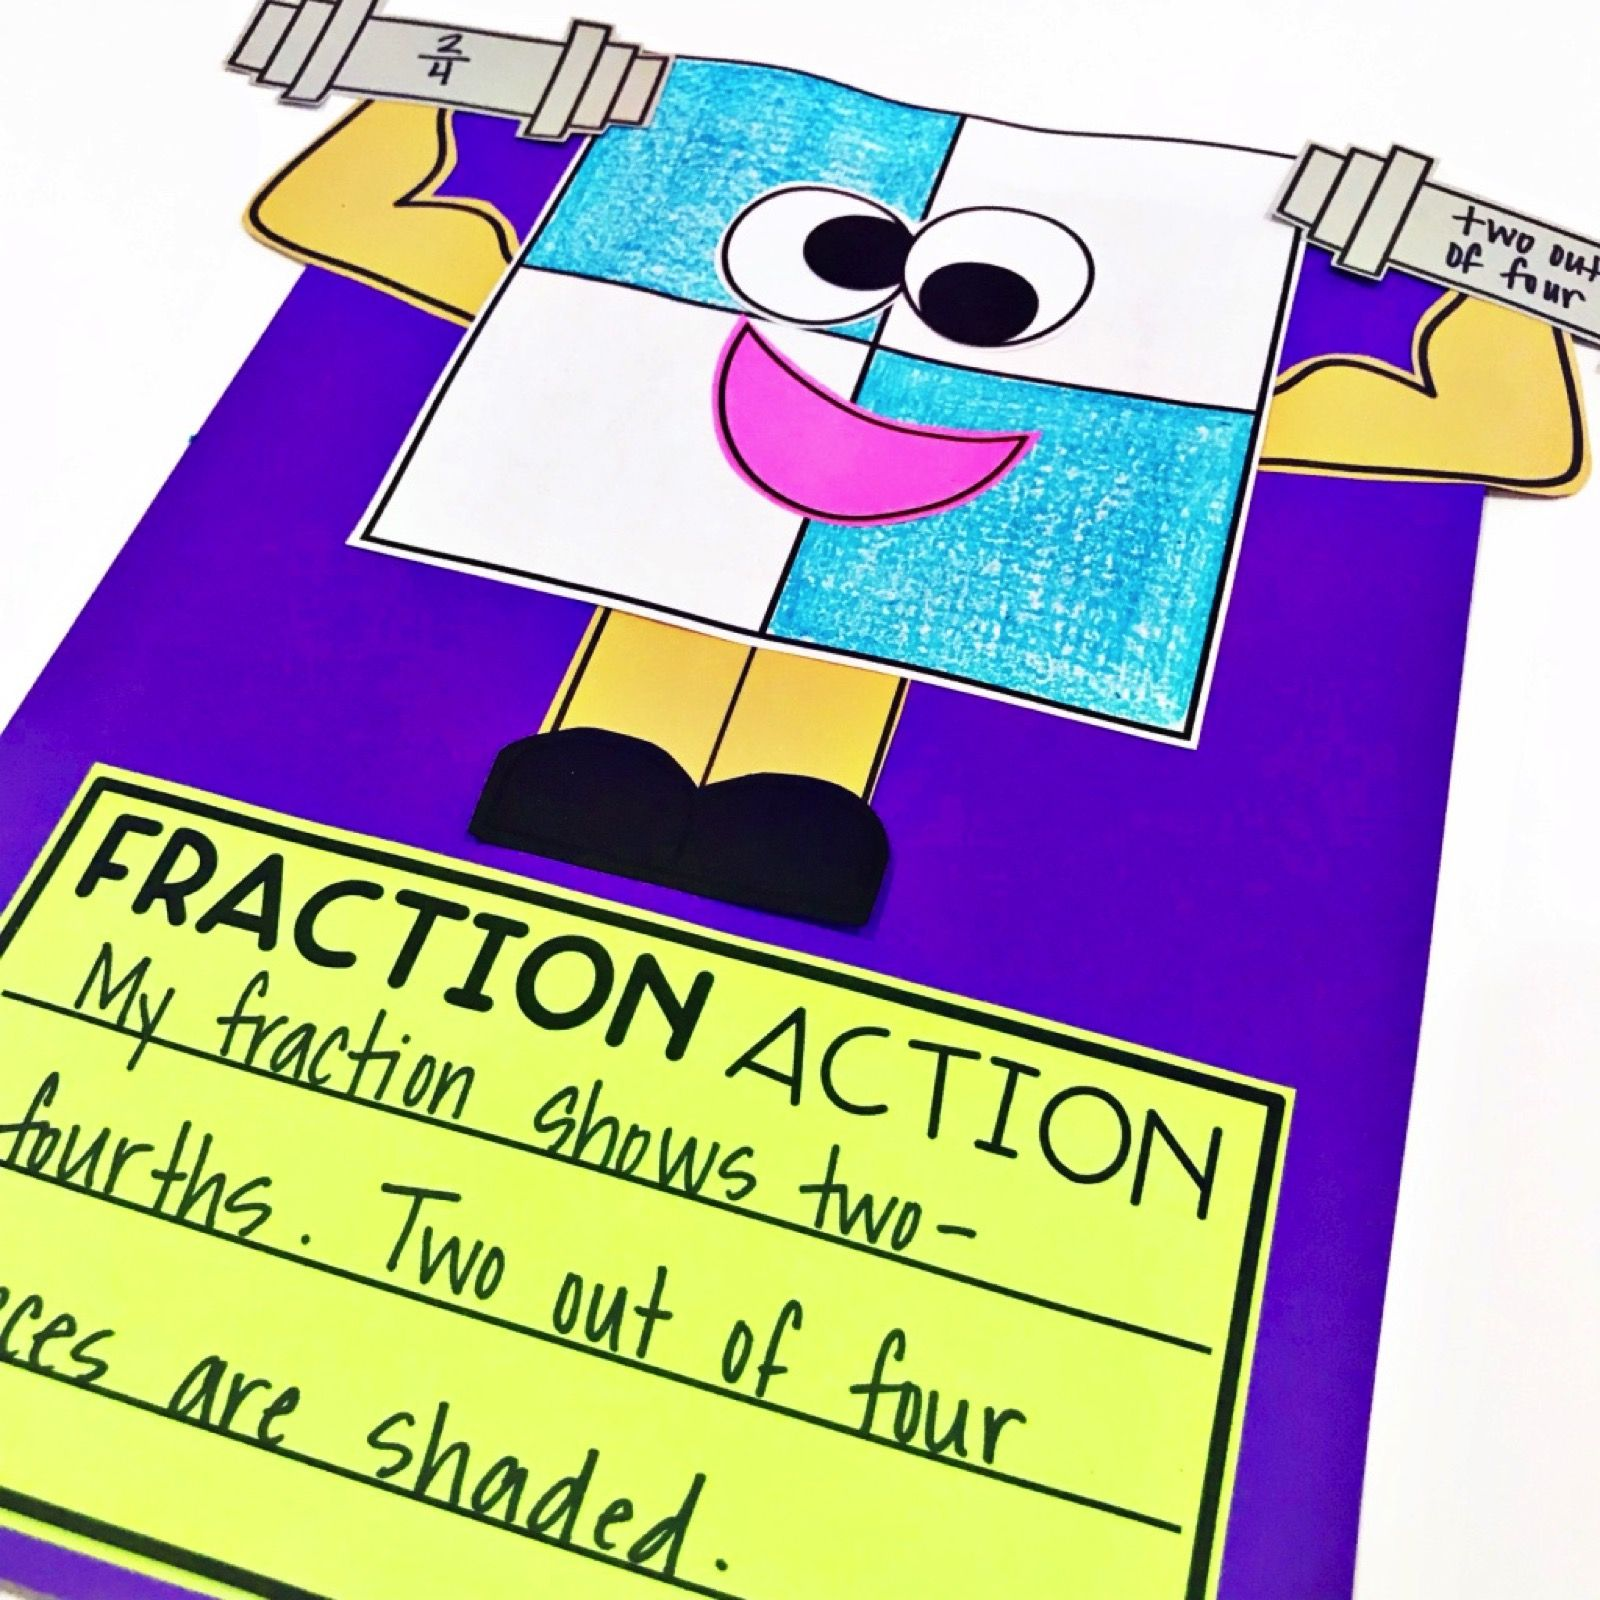 Fraction activities, games, and read alouds for 1st and